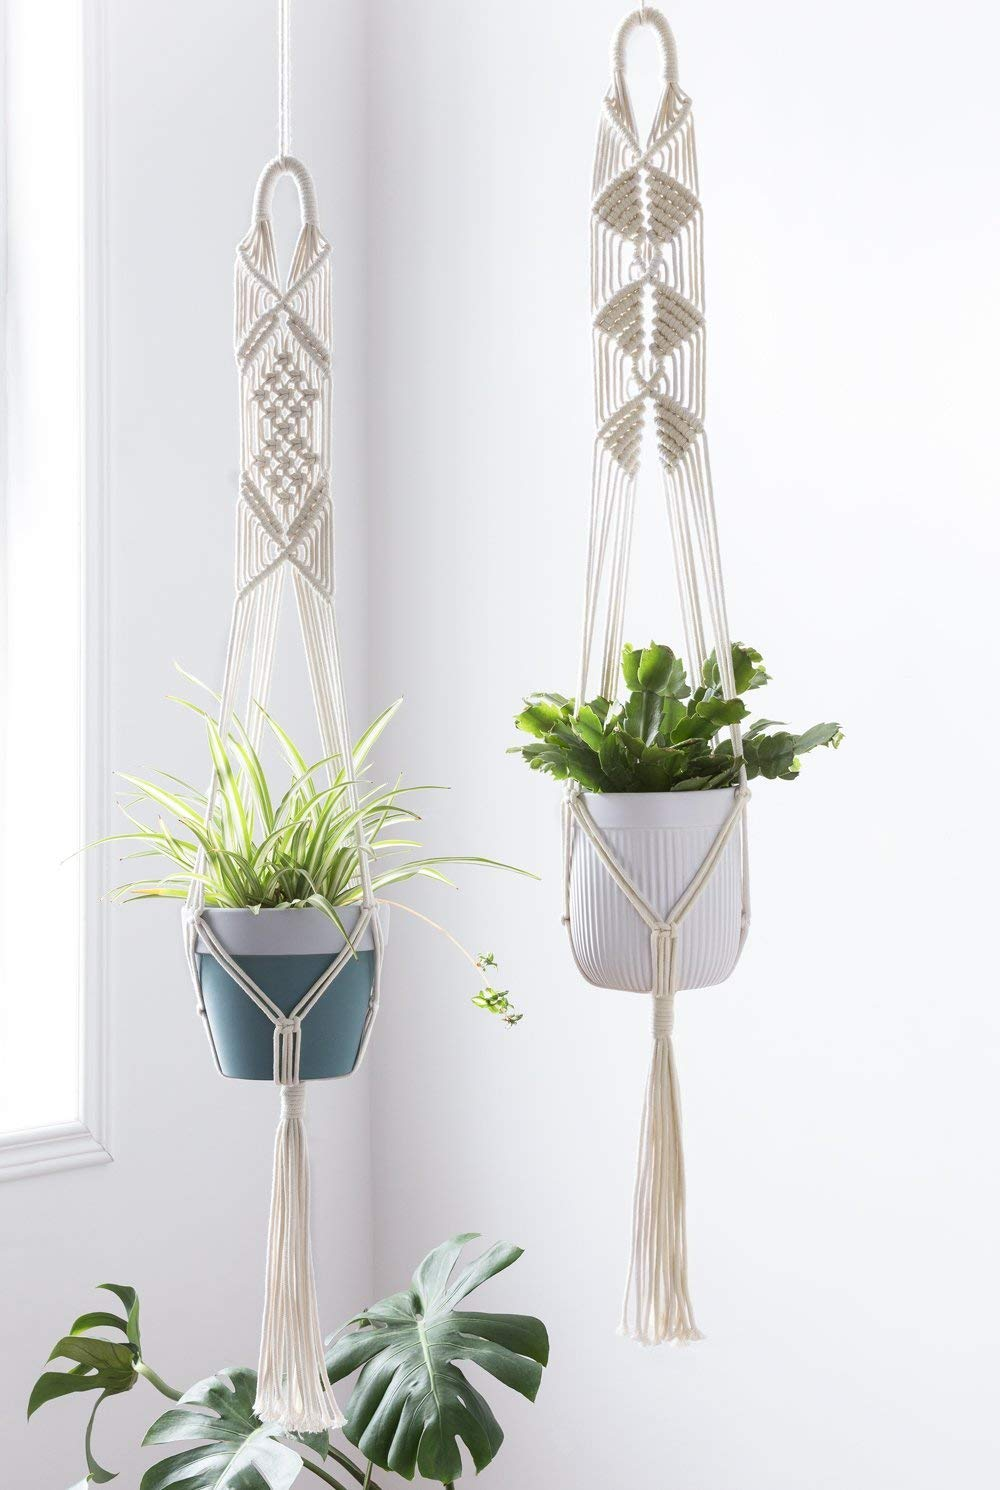 Set of 2 Macrame Plant Hanger Hanging Planter Wall Art, 41 inches